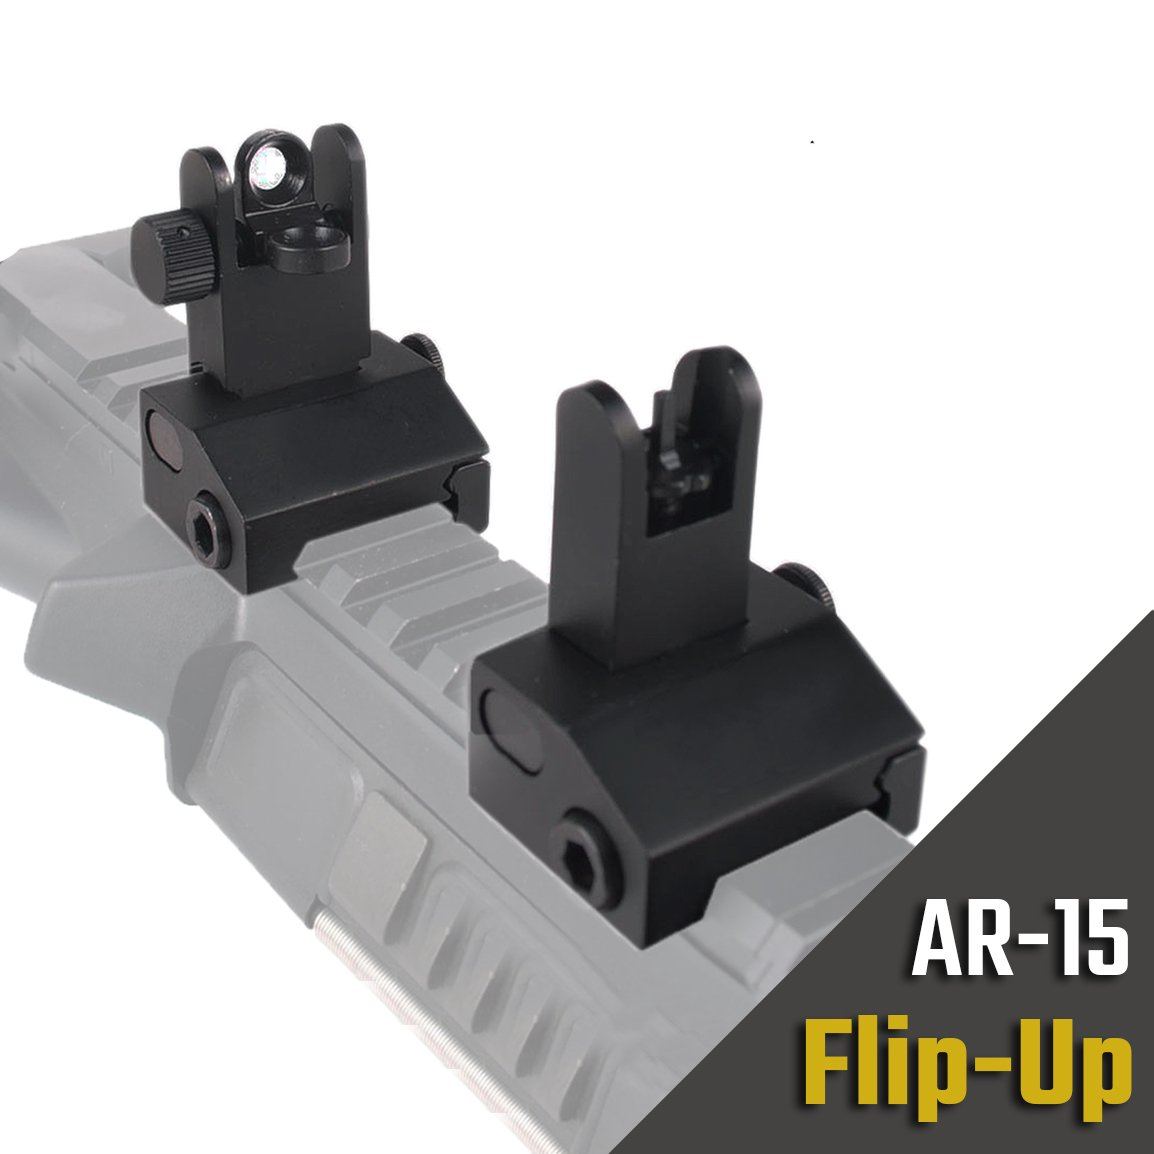 Hojan Sports Reinforced Low-Profile Rapid Transition Flip-Up Front and Rear Backup Iron Sights BUIS for Standard Picatinny Mount Co-Witness Aperture Sight